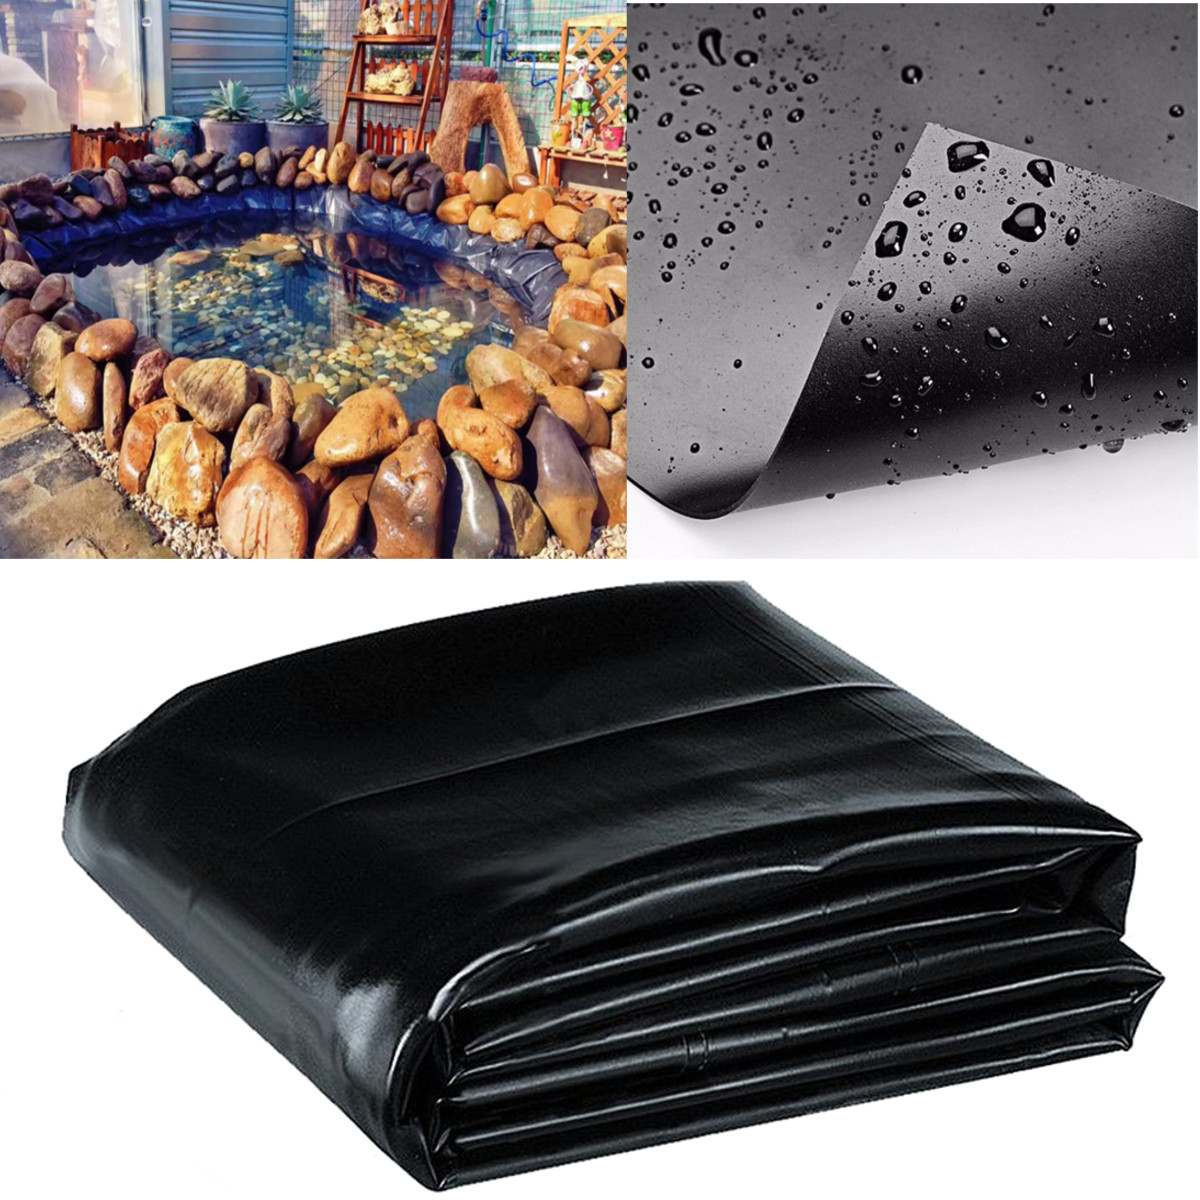 Black HDPE Fish Pond Liner Garden Pools Reinforced HDPE Heavy Landscaping Pool Pond Waterproof Liner Cloth